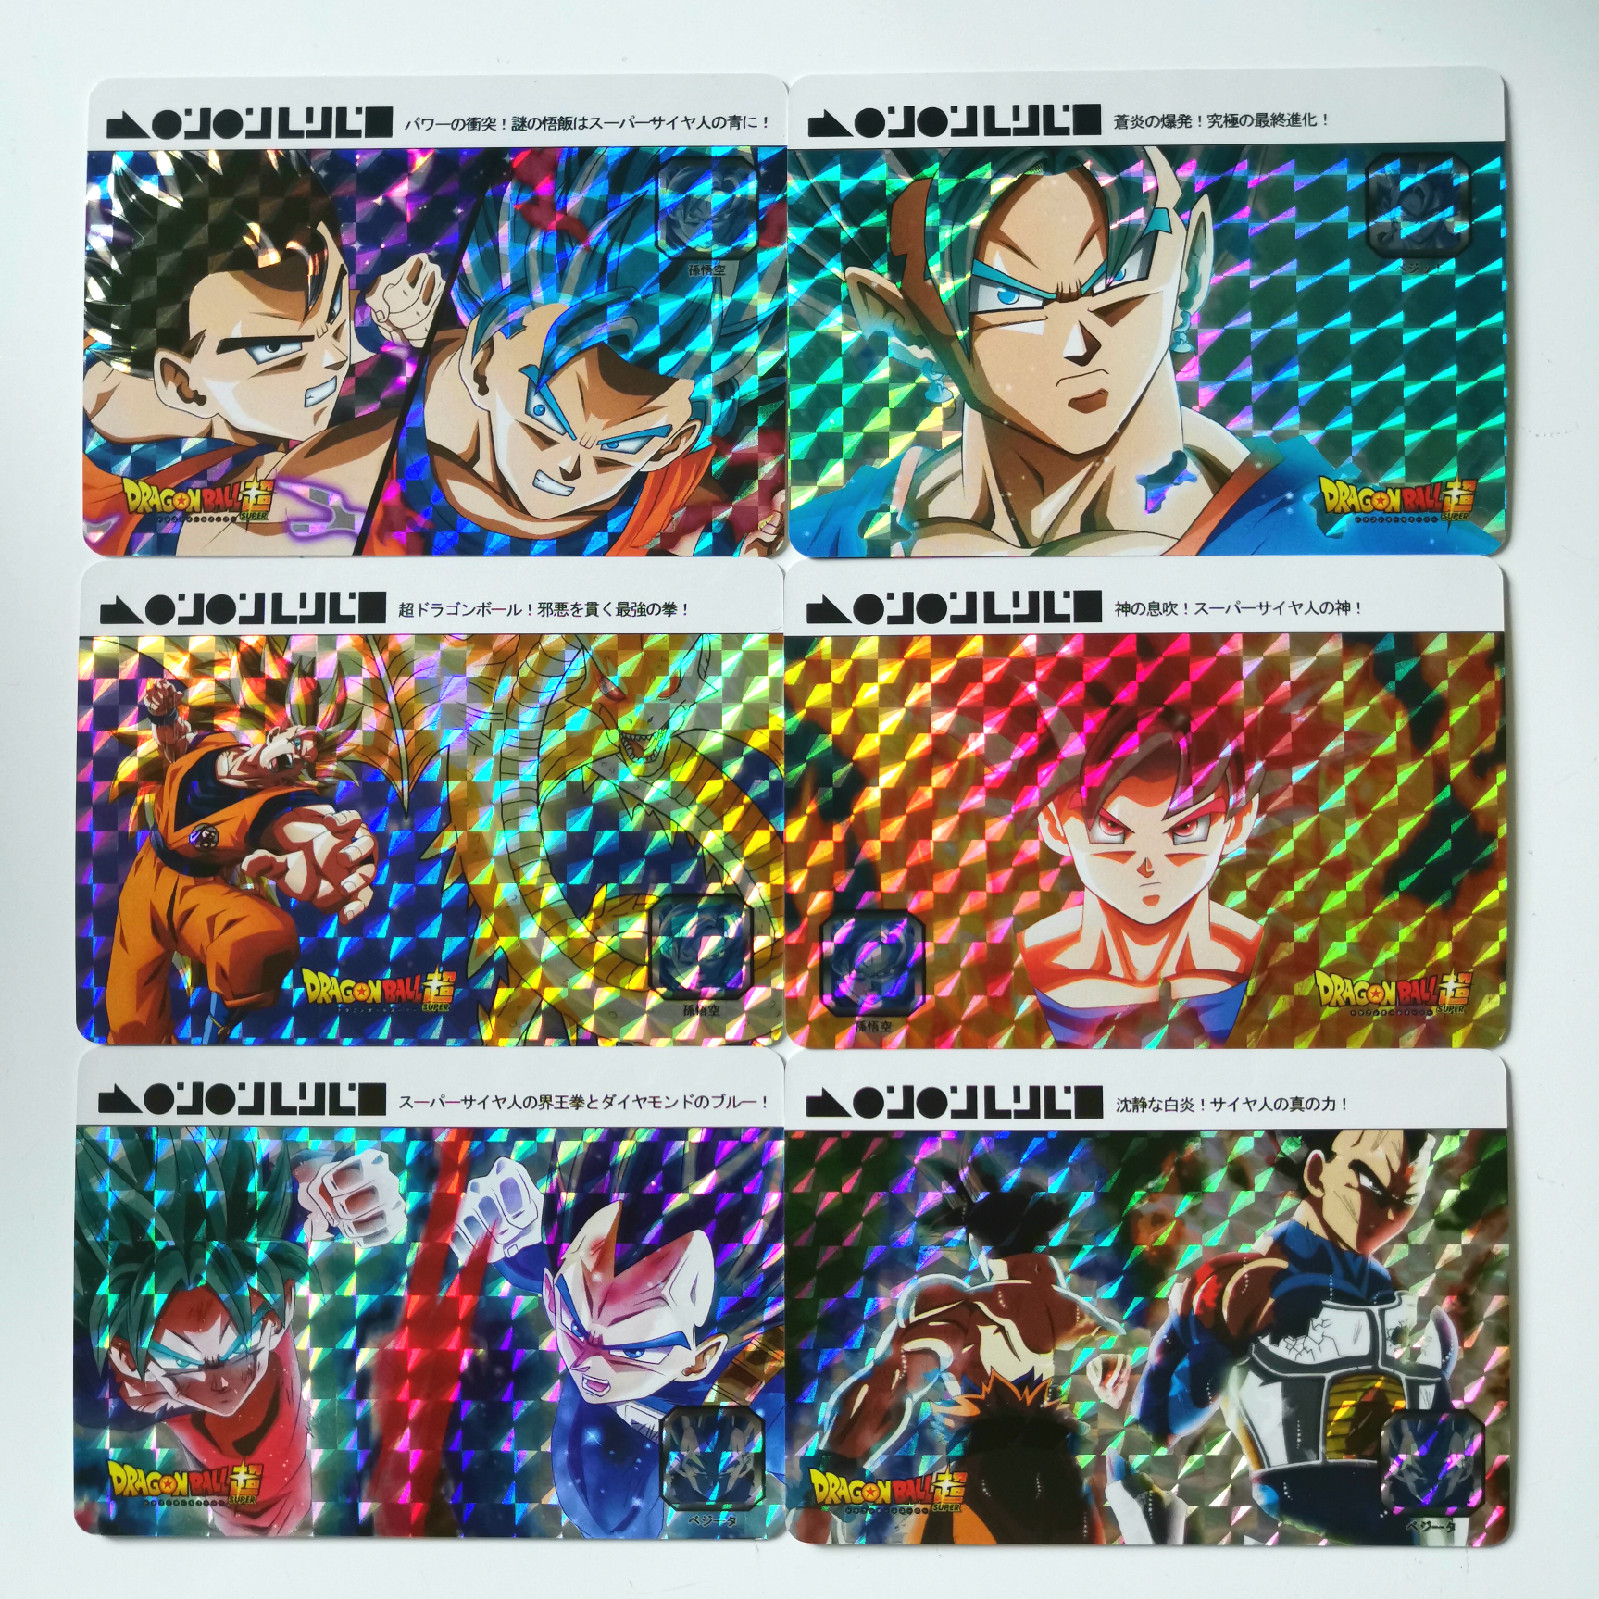 55pcs/set Super Dragon Ball Z Imitation France Style Heroes Battle Card Ultra Instinct Goku Vegeta Super Game Collection Cards